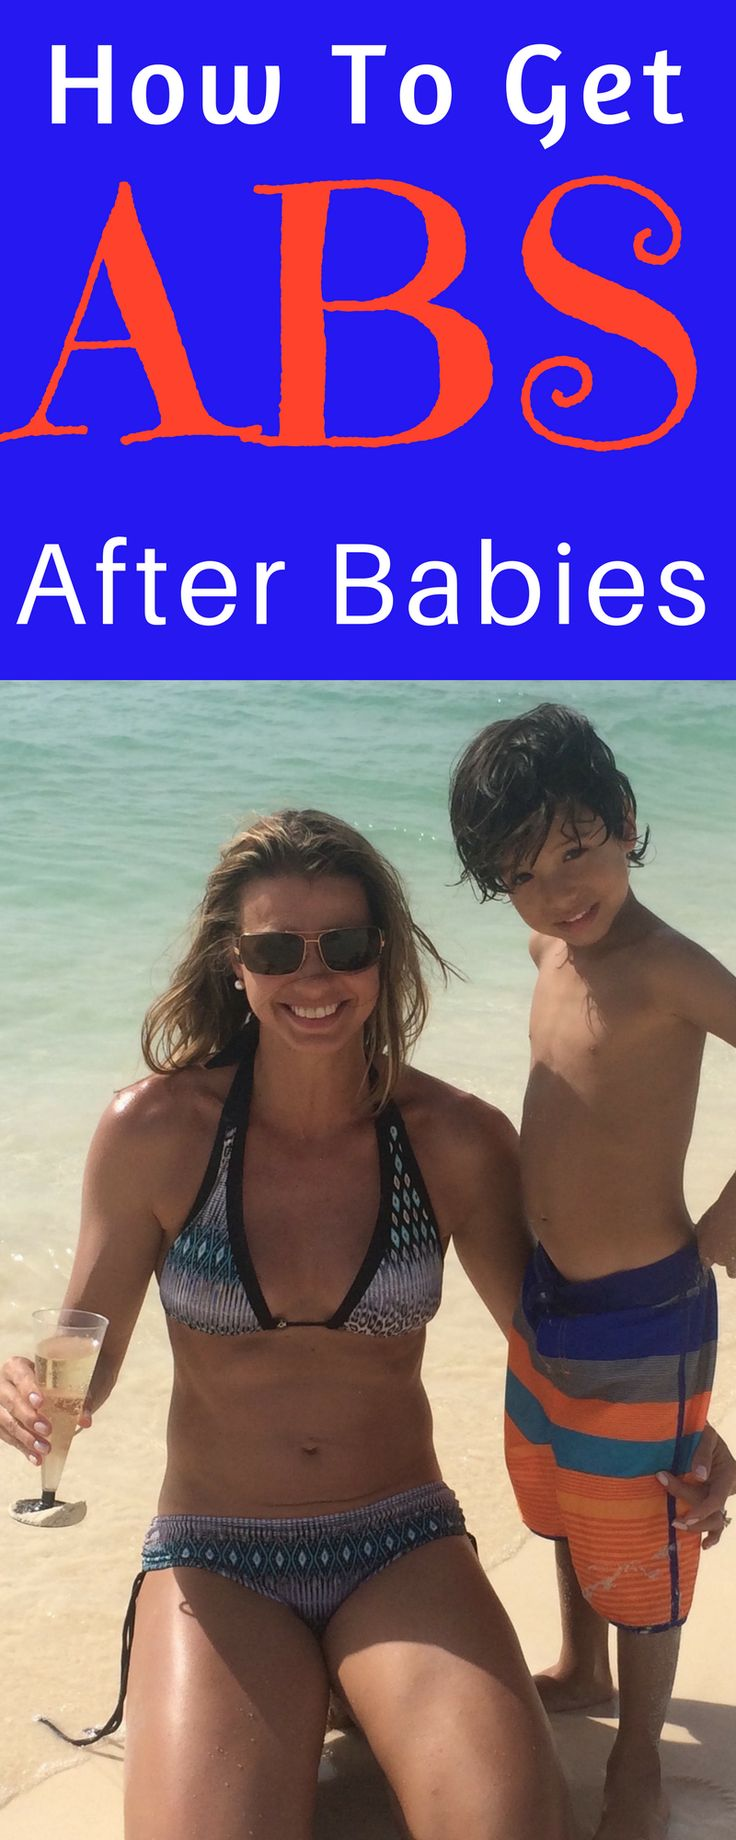 How To Get ABS after babies.  This Fit Momma shows you all the secrets how.  Lots of workouts included.